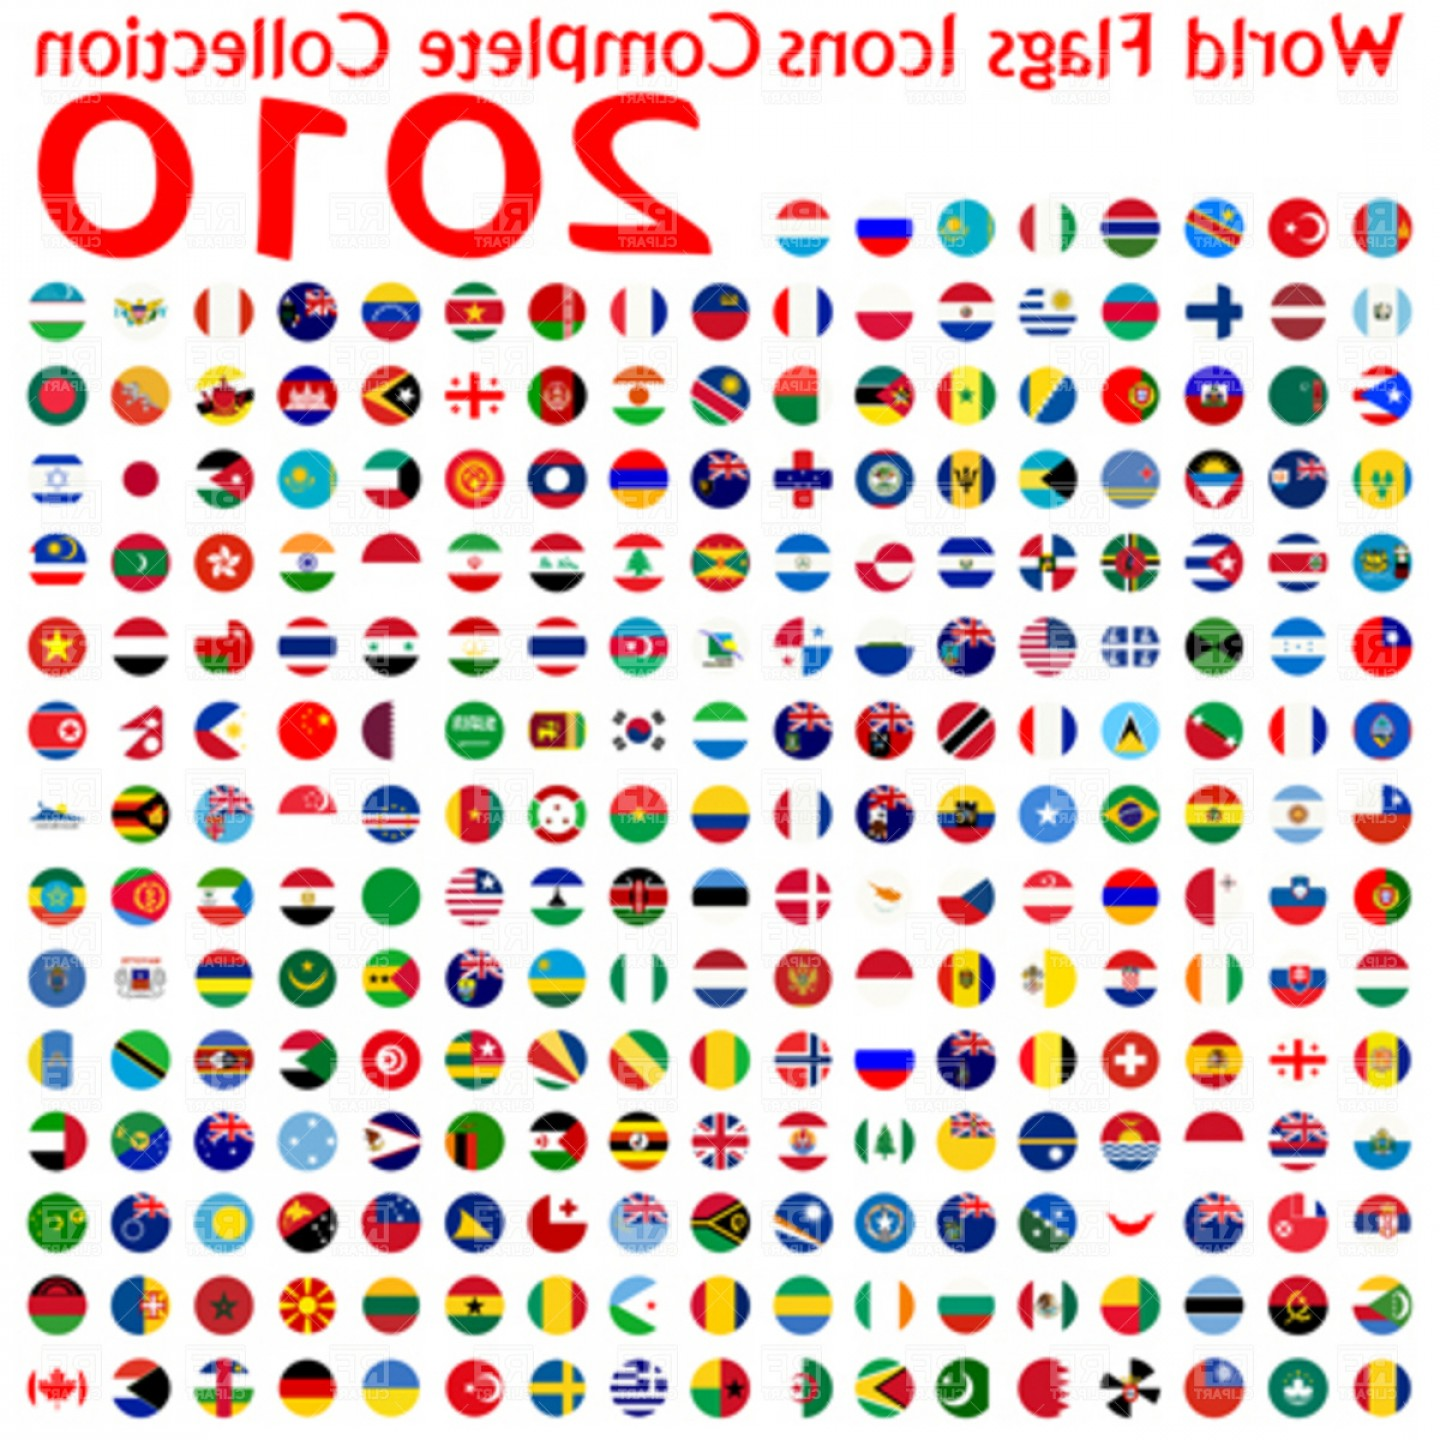 Free EPS Vector Art: World Flags Icons Collection Abstract Vector Art Illustration Vector Clipart